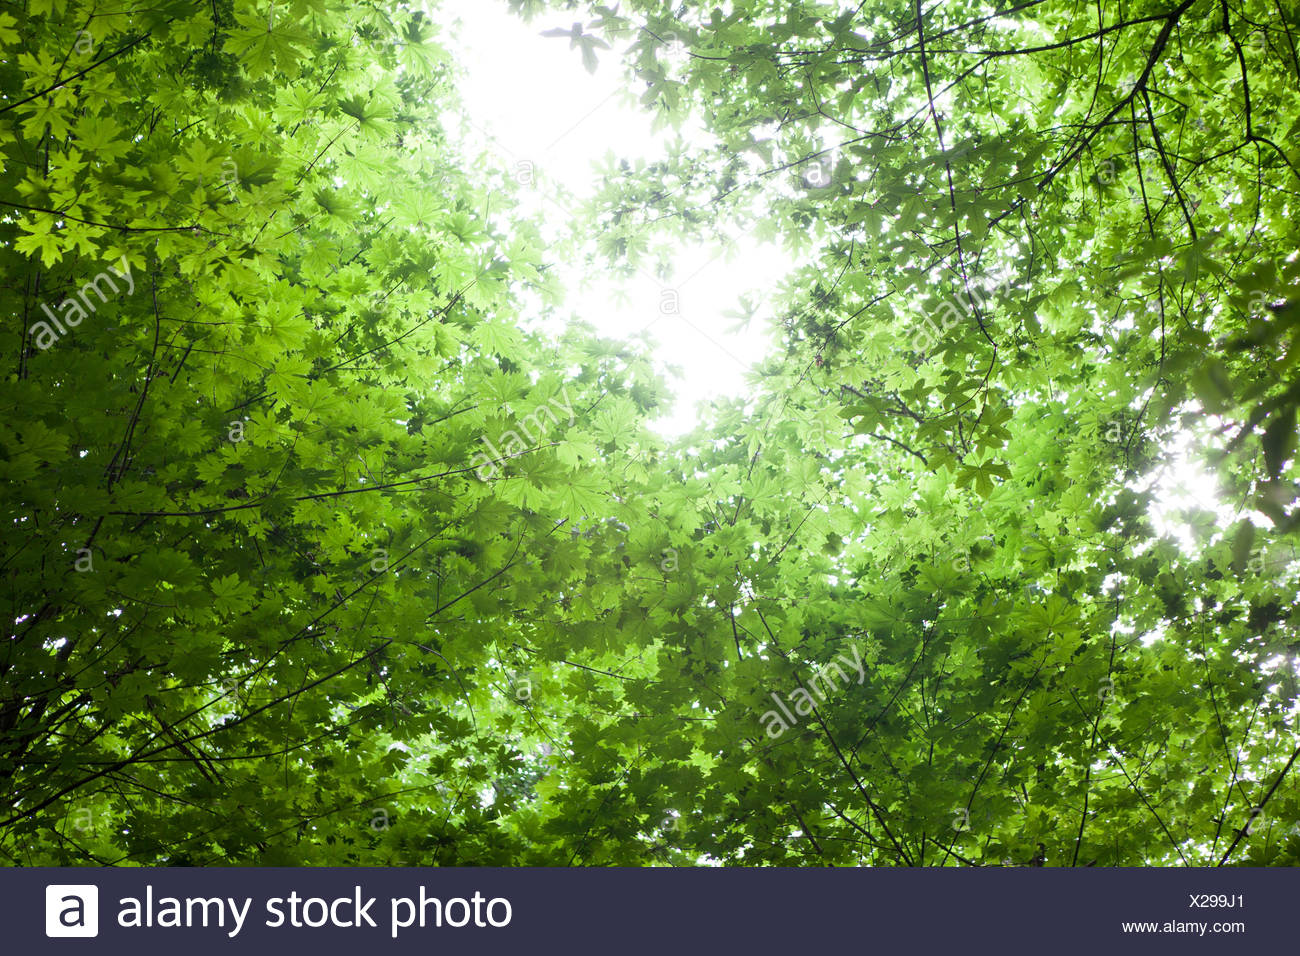 Sun shining through canopy of trees - Stock Image